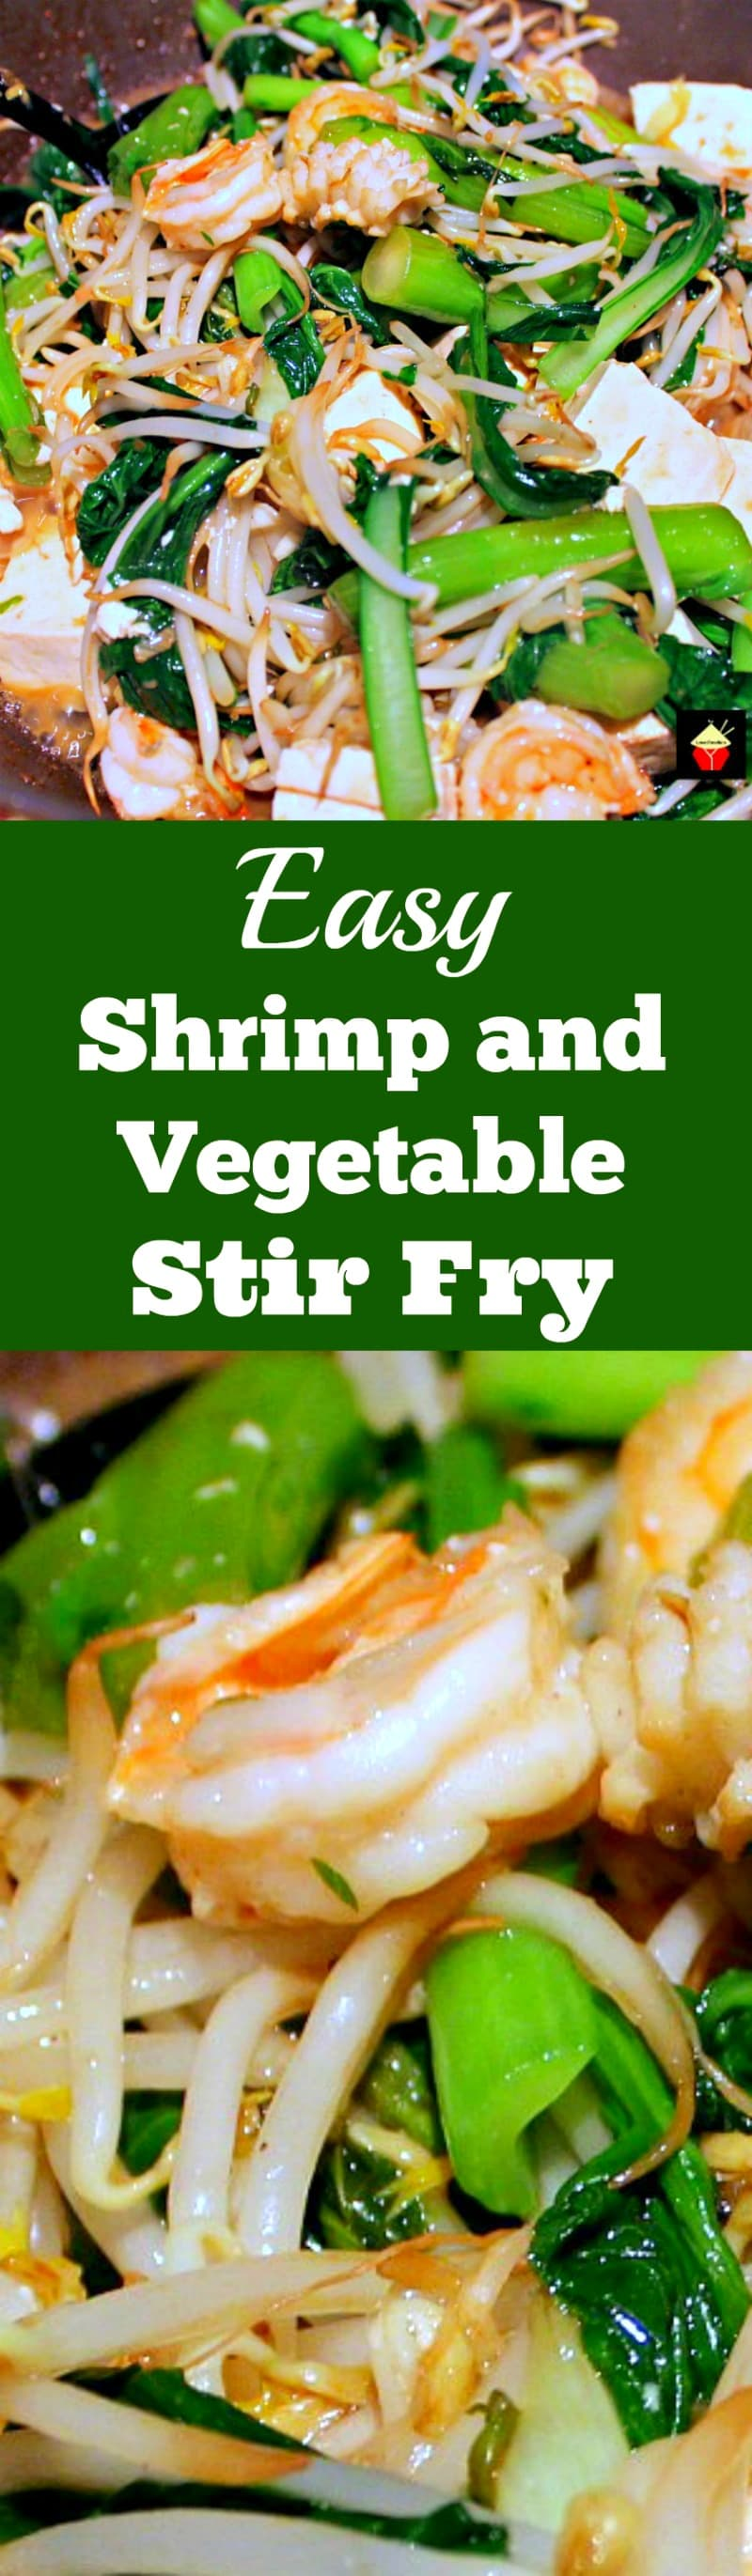 Easy Shrimp and Vegetable Stir Fry Additions of tofu, shrimp, and lovely Chinese vegatables quickly cooked in a delicious Asian sauce makes for a fantastic dinner | Lovefoodies.com